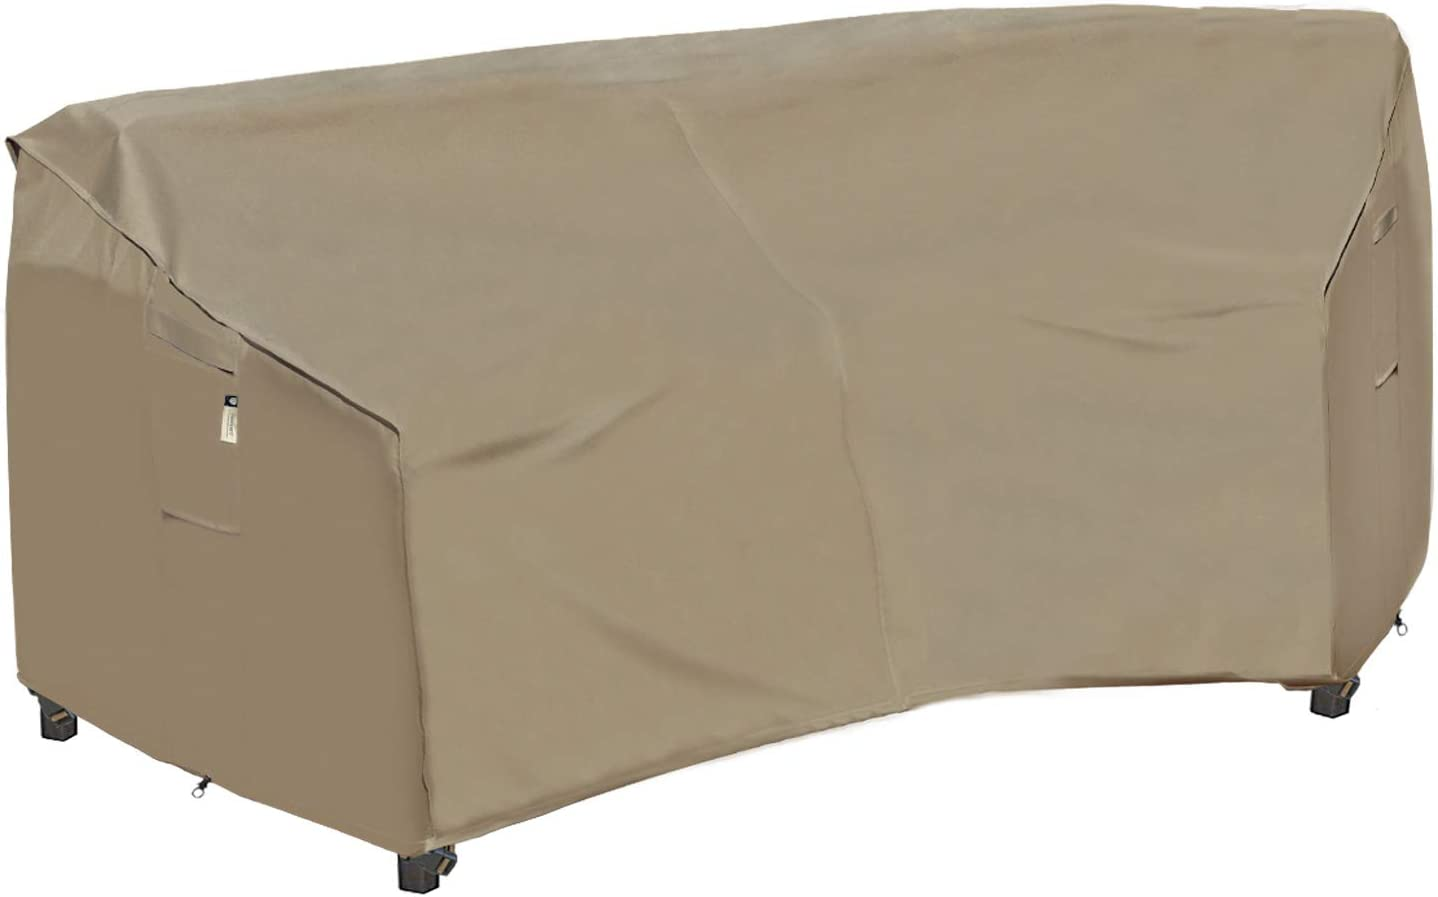 Heavy Duty Outdoor Sectional Couch Covers, 100% Waterproof Reinforced 600D Patio Sectional Sofa Cover, Curved Lawn Patio Furniture Cover